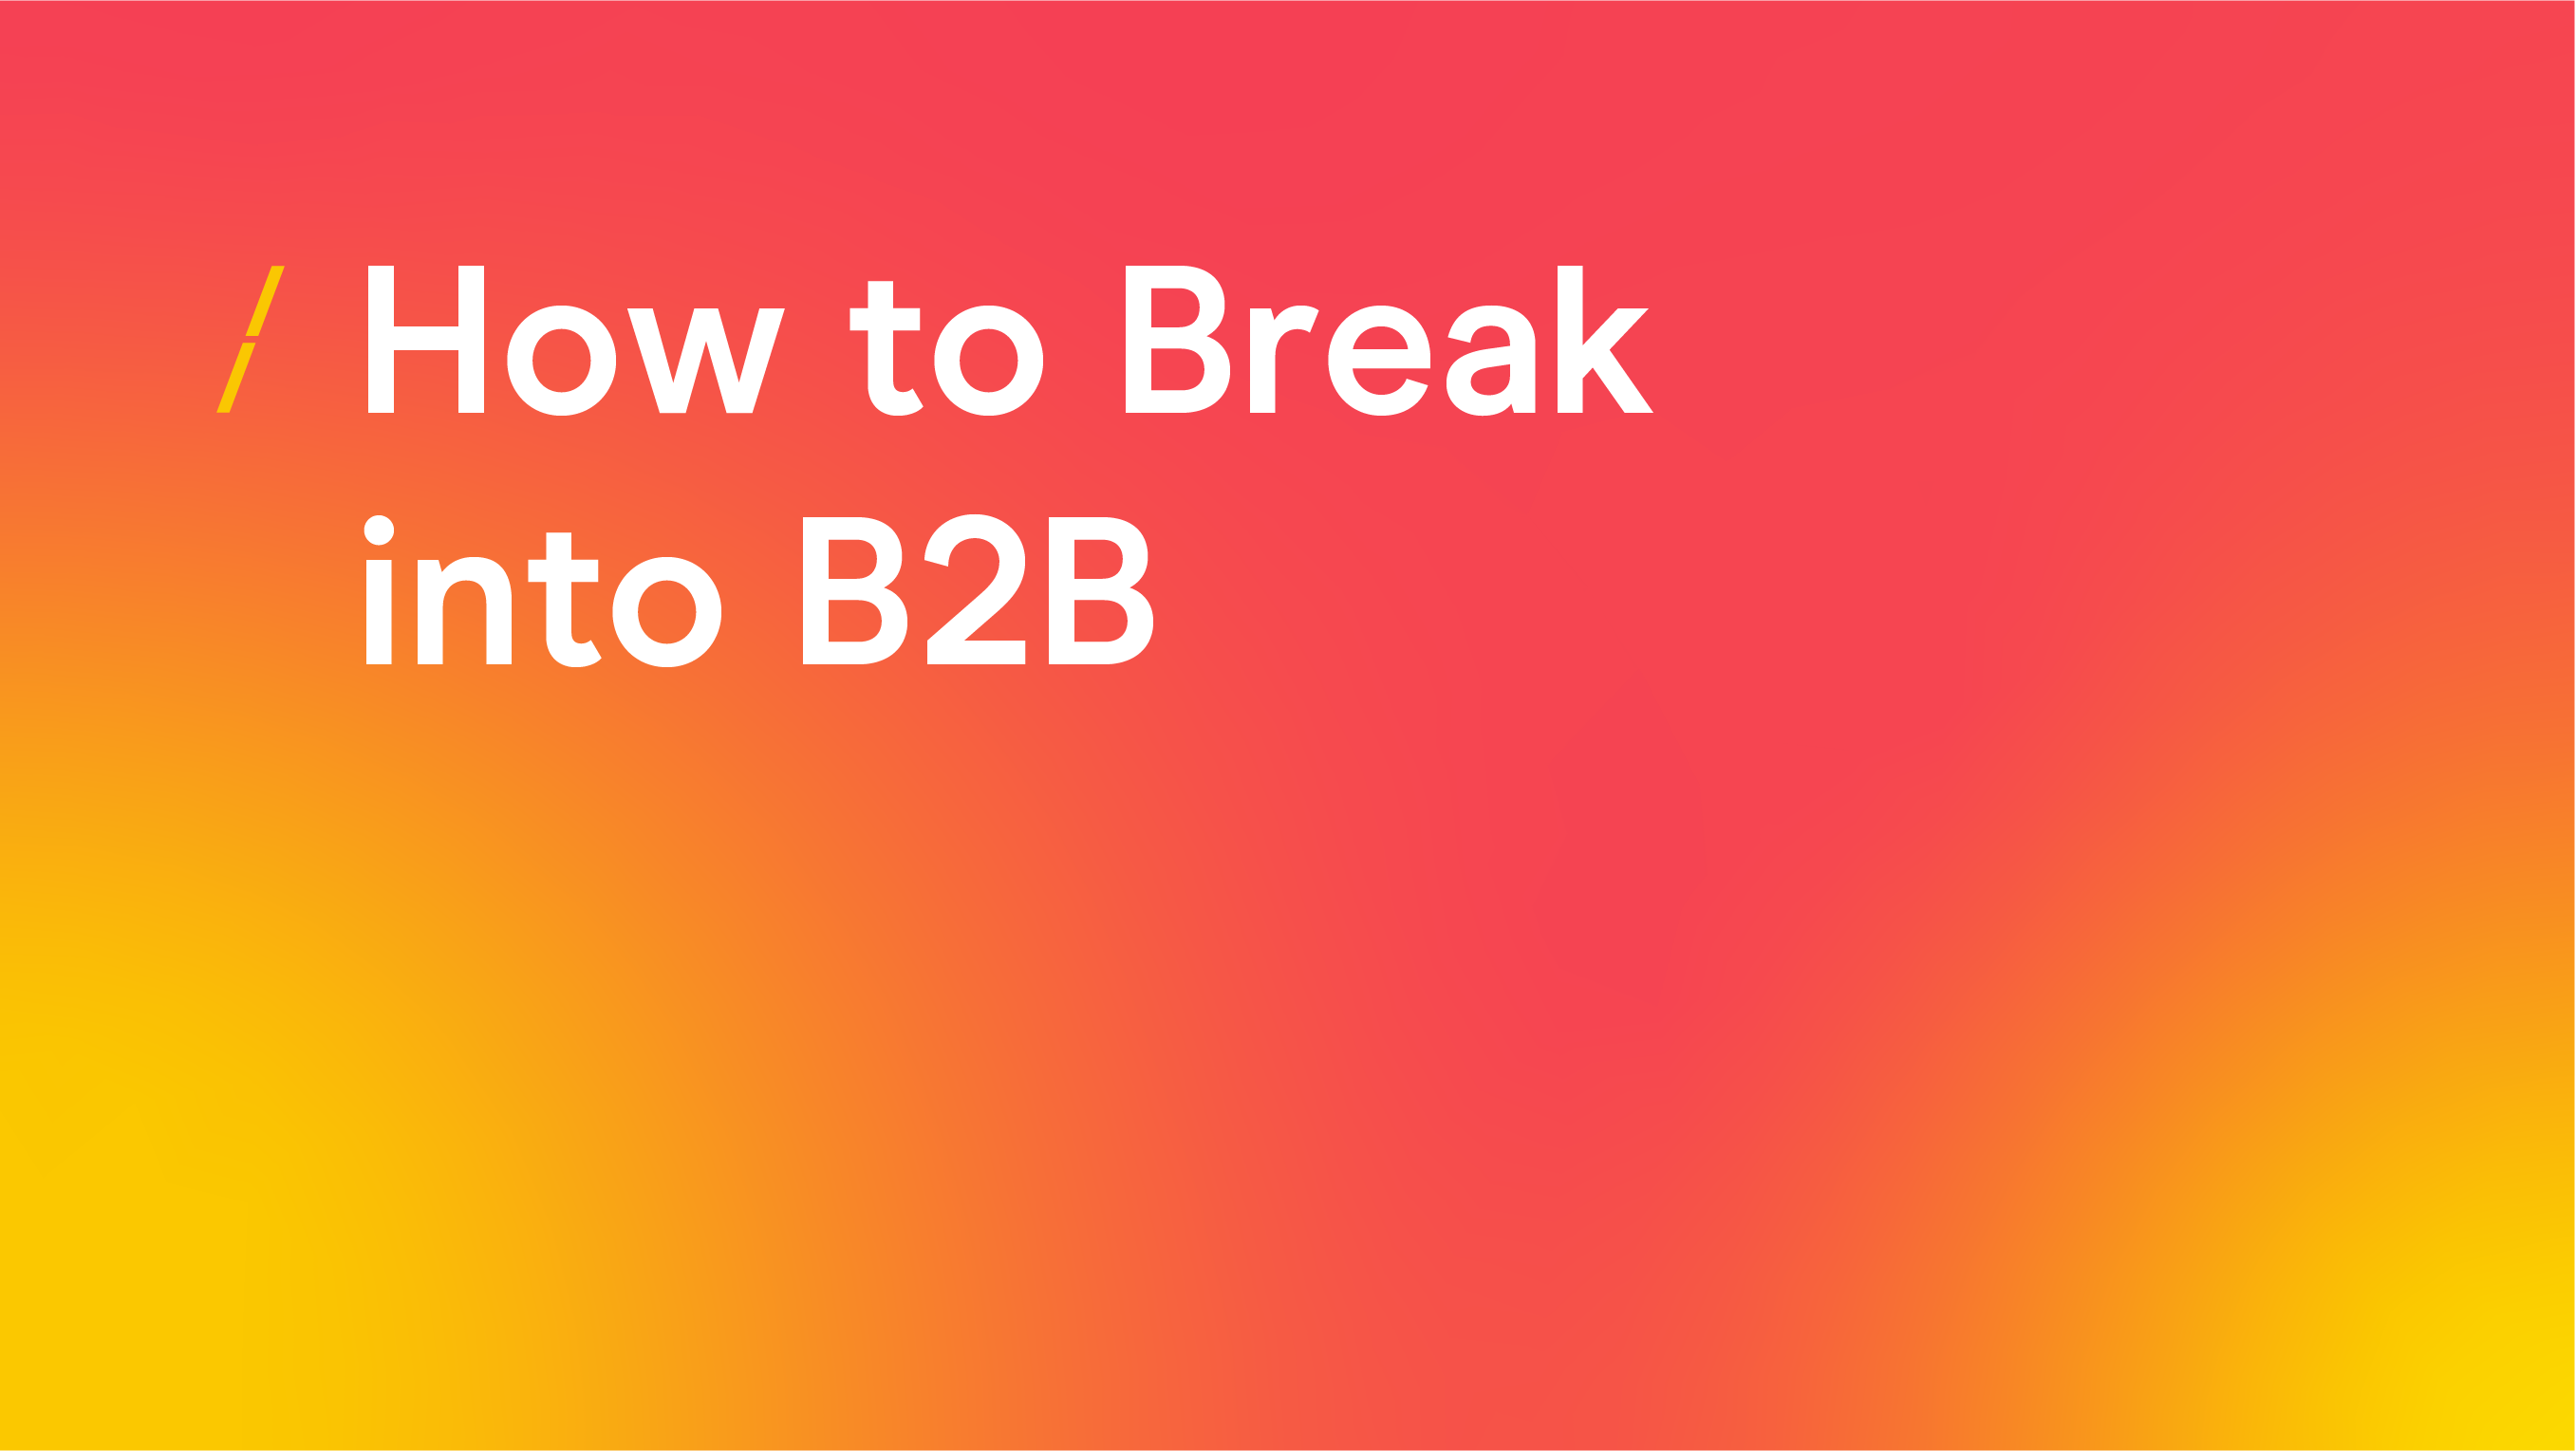 How to break into B2B-02.png